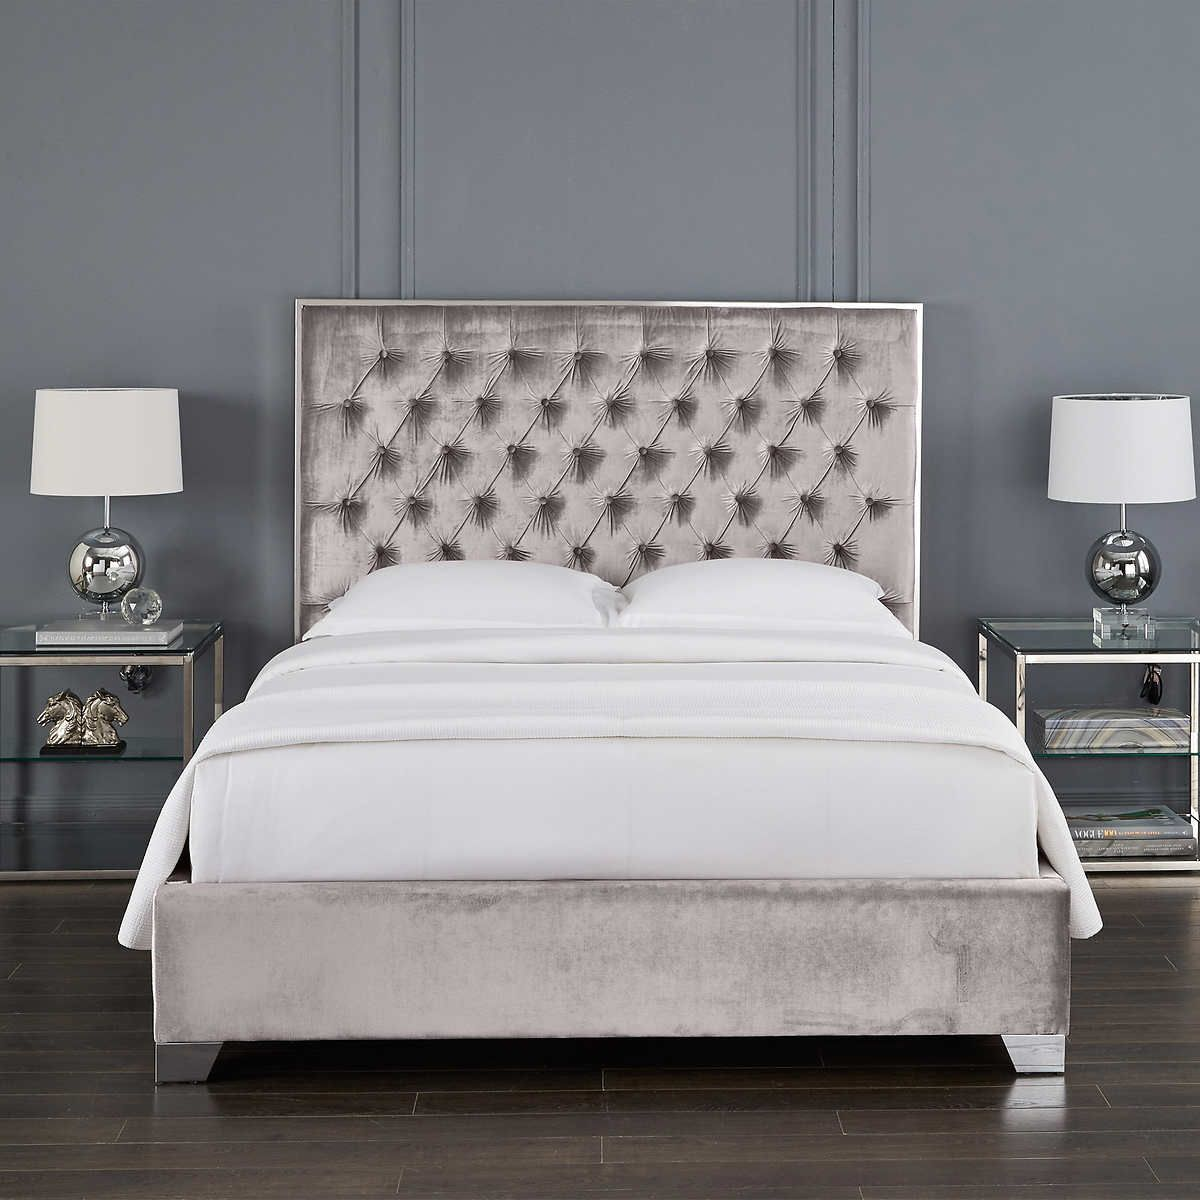 Cali Upholstered Bed Upholstered Beds Luxurious Bedrooms